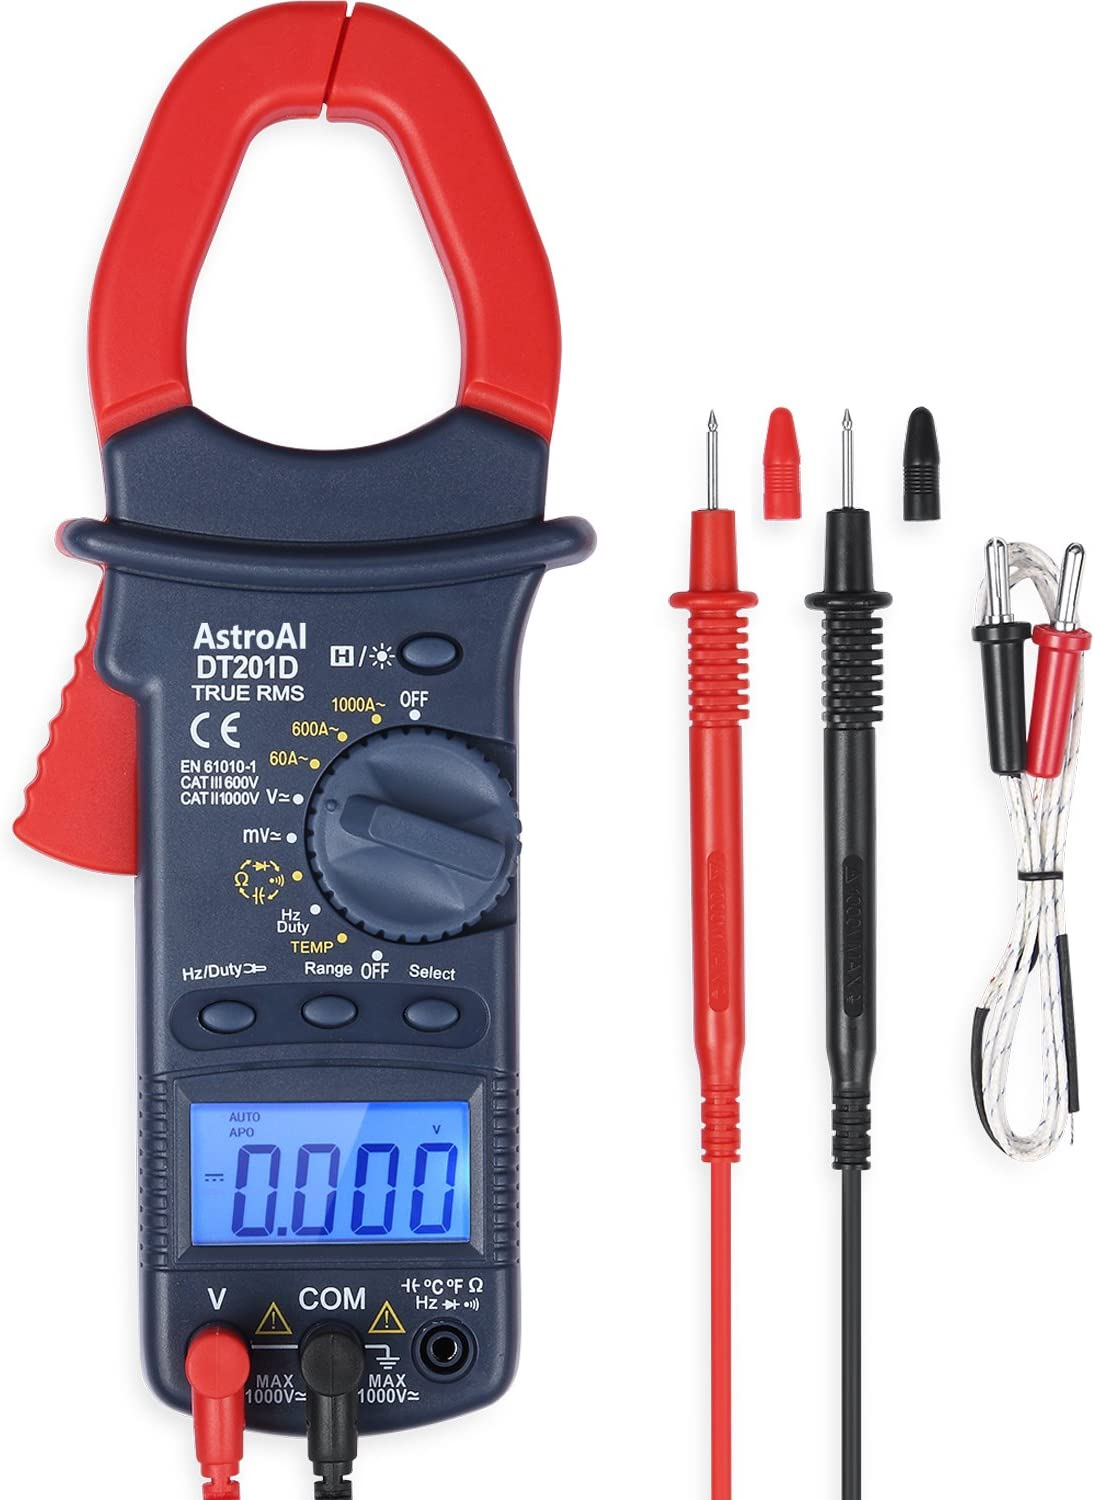 AstroAI Digital Clamp Meter, TRMS 6000 Counts Multimeter Volt Amp Ohm Meter with Manual and Auto Ranging, Continuity, Frequency; Diodes, Temperatur Tester, Ideal for Father's Day Gifts